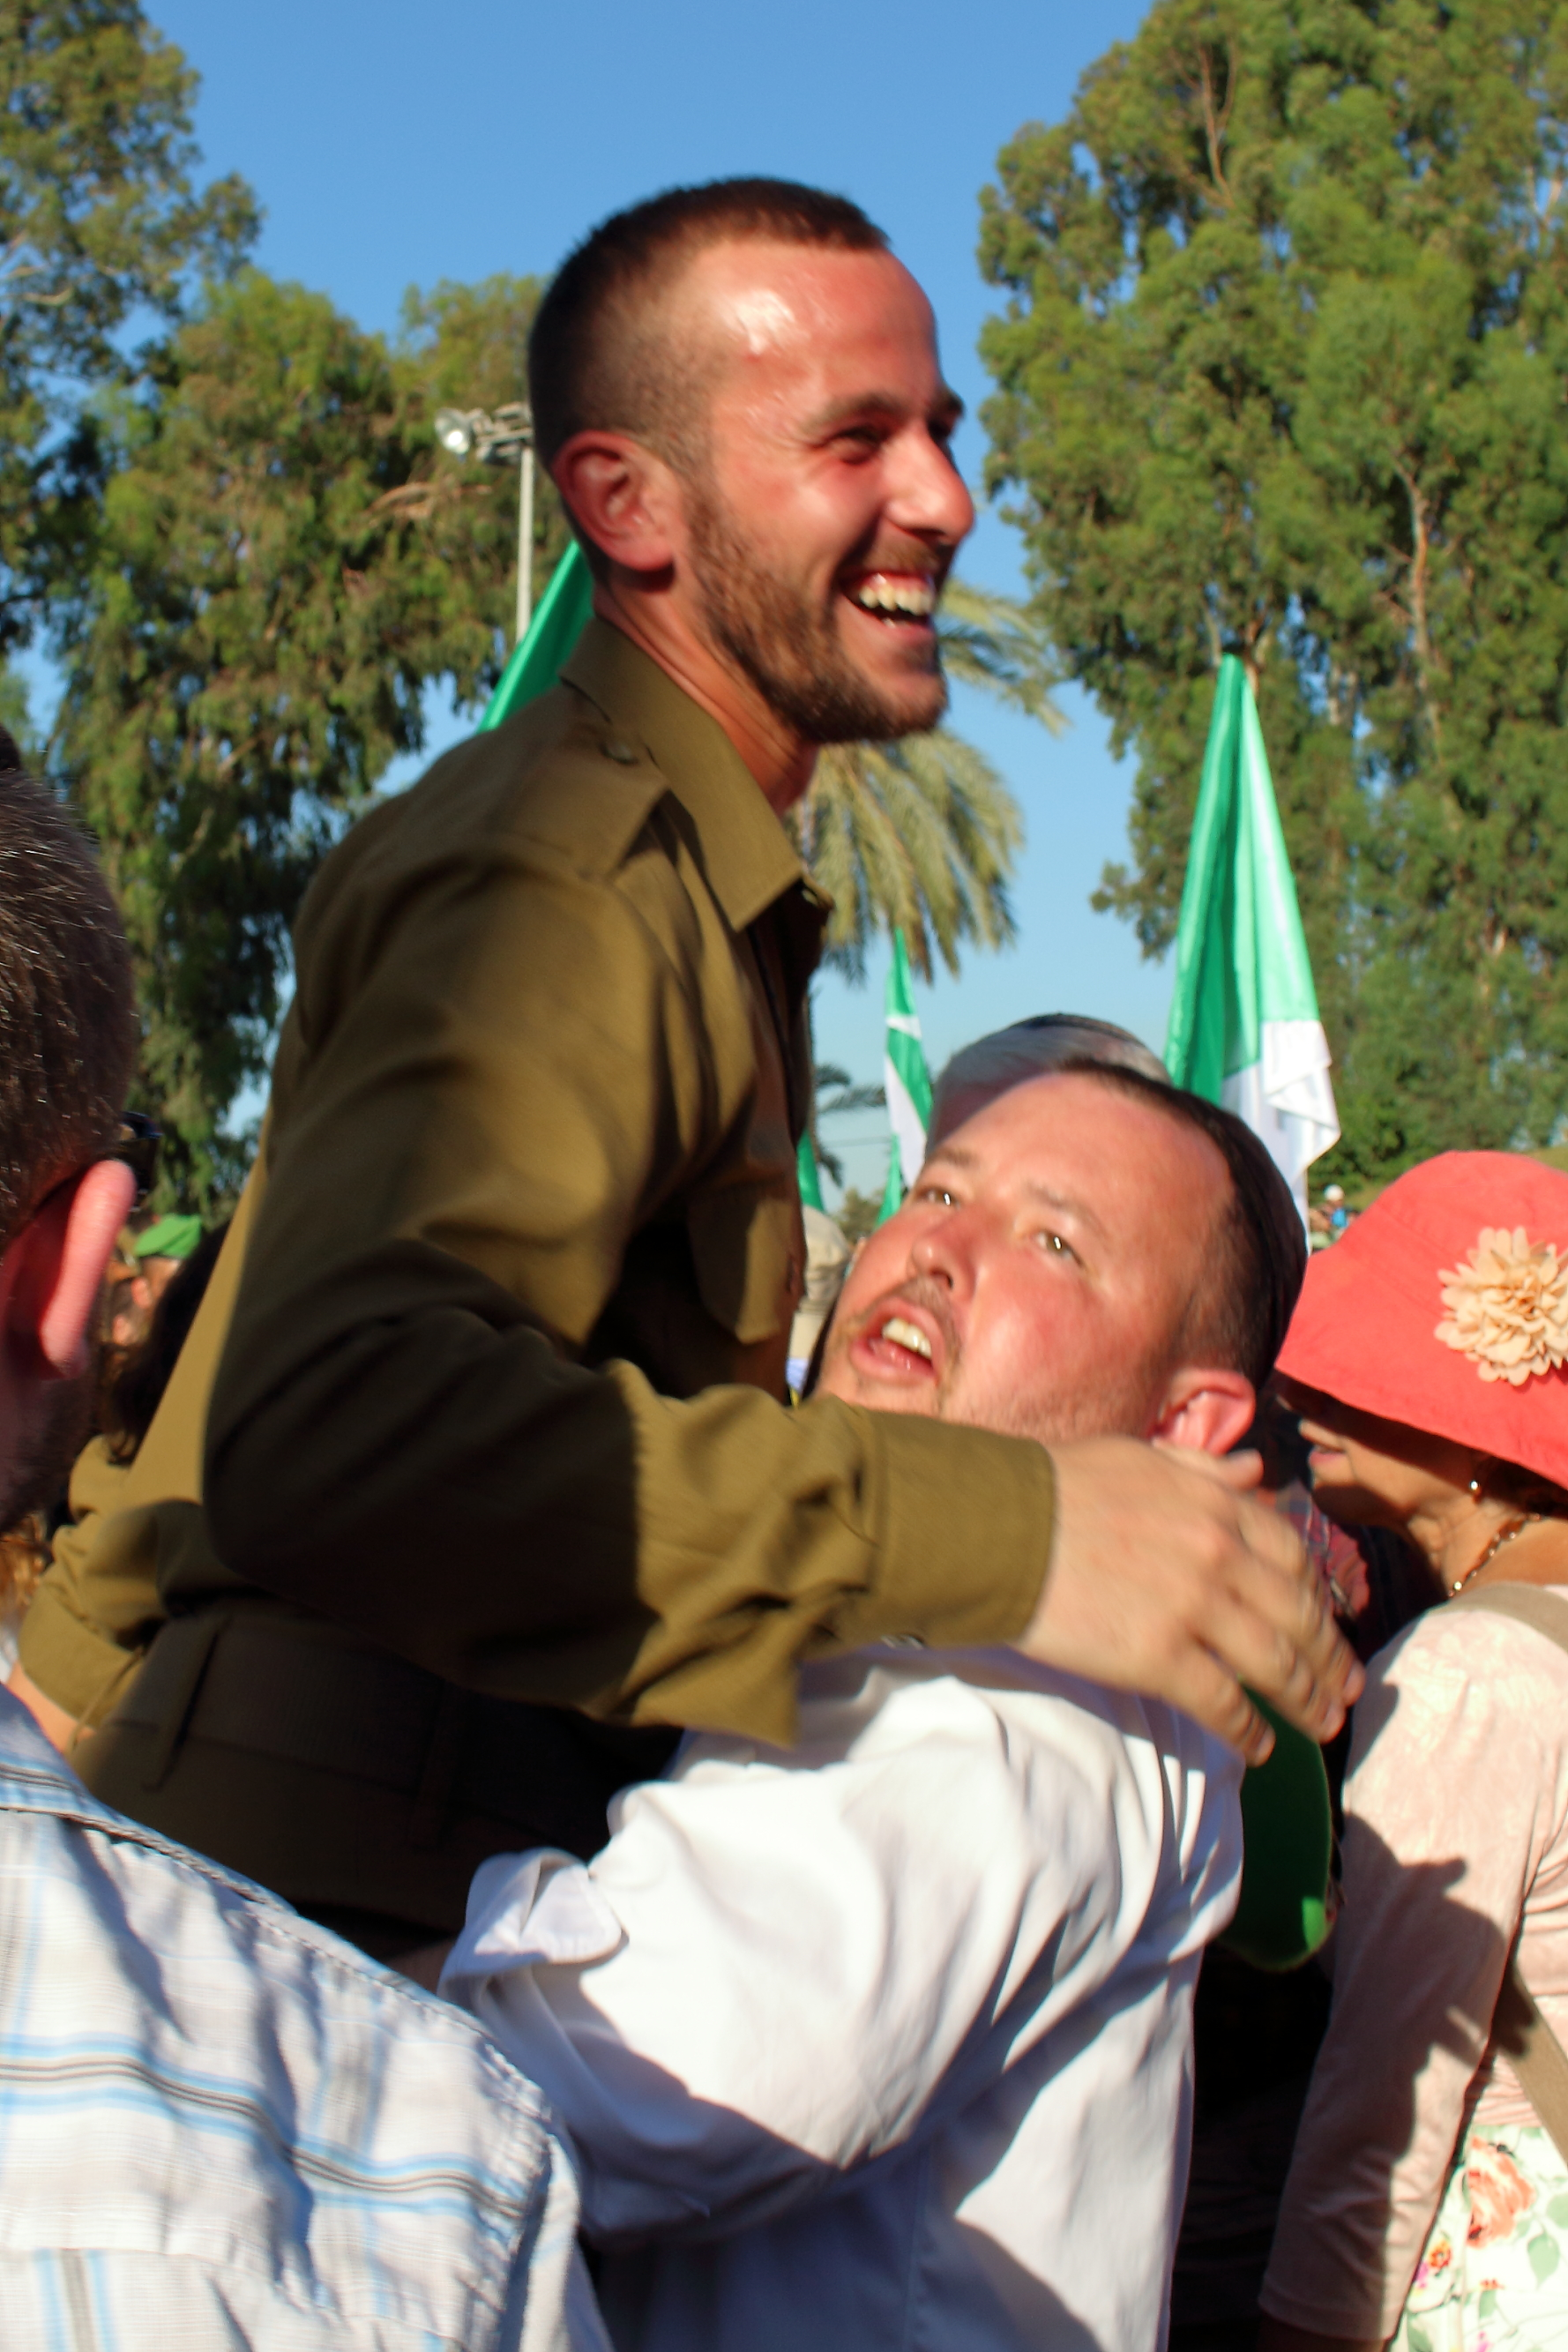 Mazel tov to Shlomo Benjamin upon receiving the green beret of the Nachal Brigade!